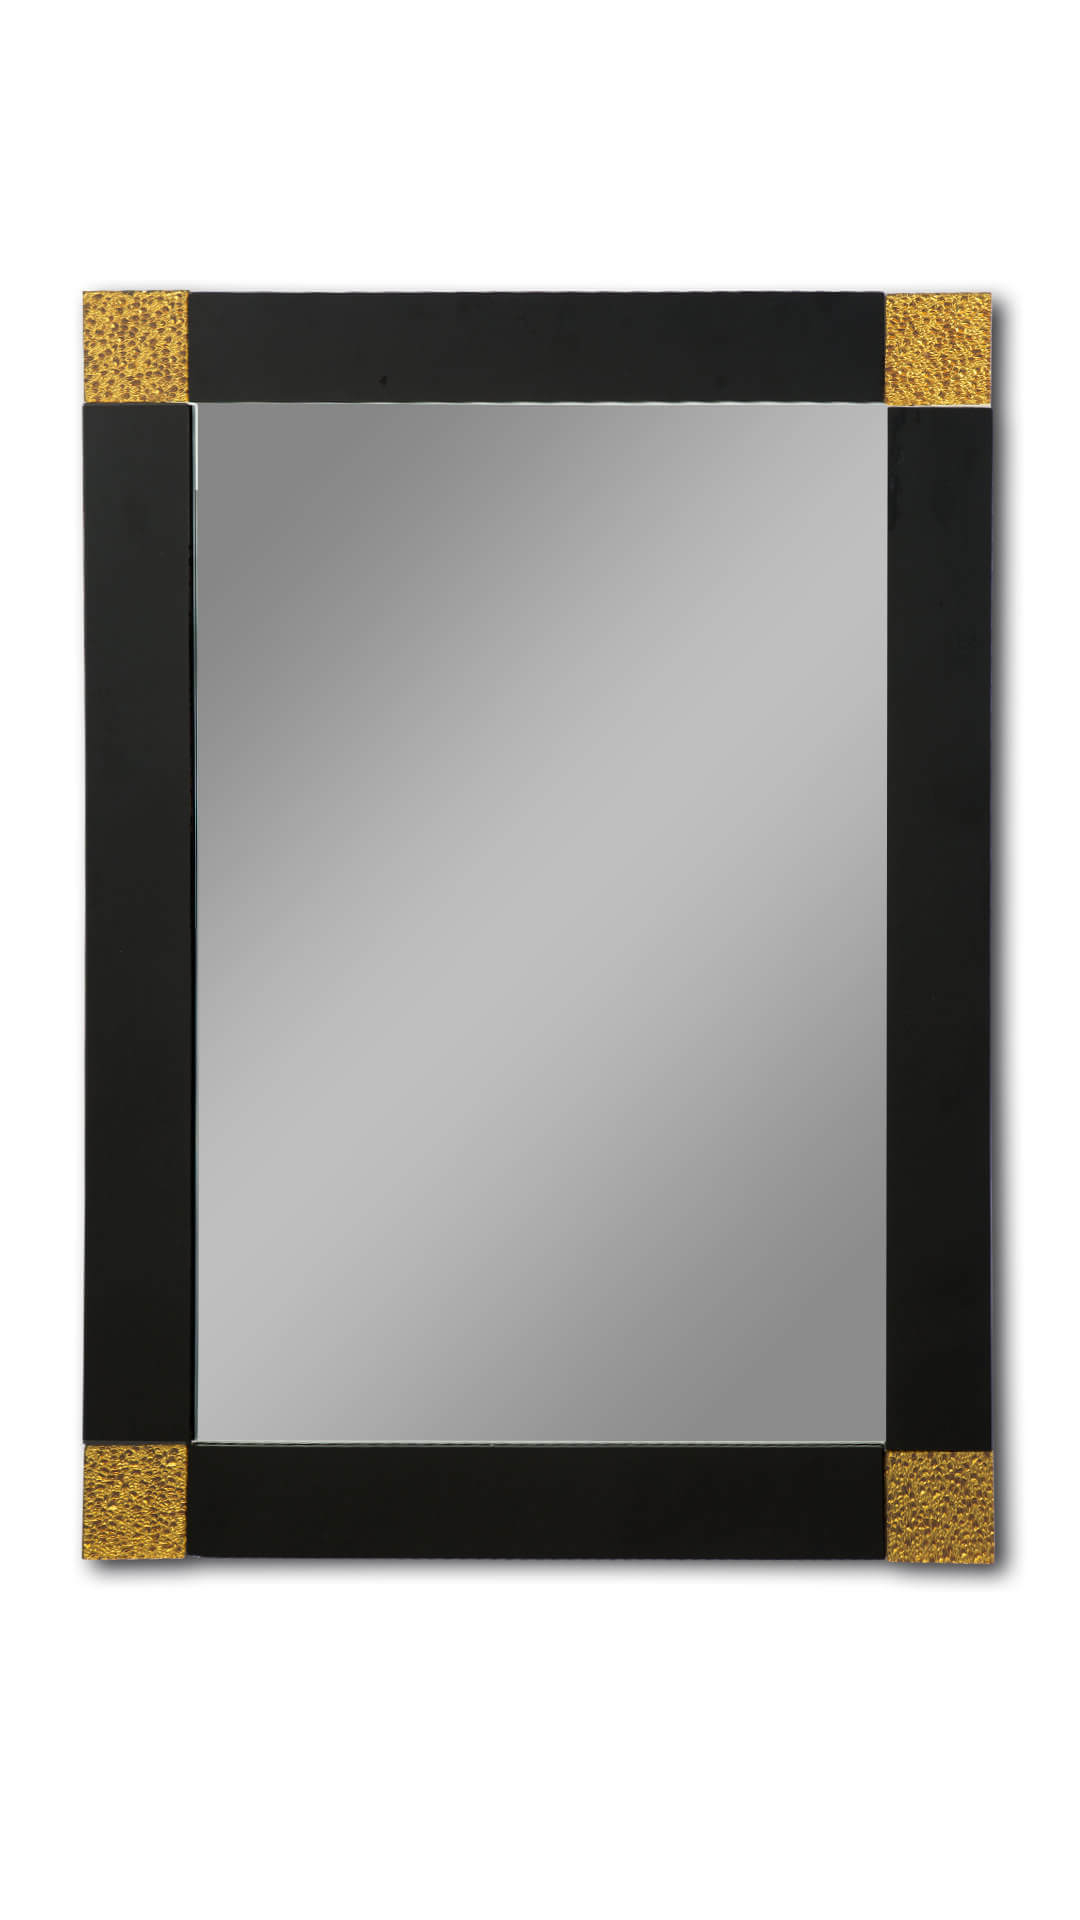 Black And Gold Wall Mirrors Intended For Most Popular Black And Gold Rectangle Wall Mirror (View 15 of 20)